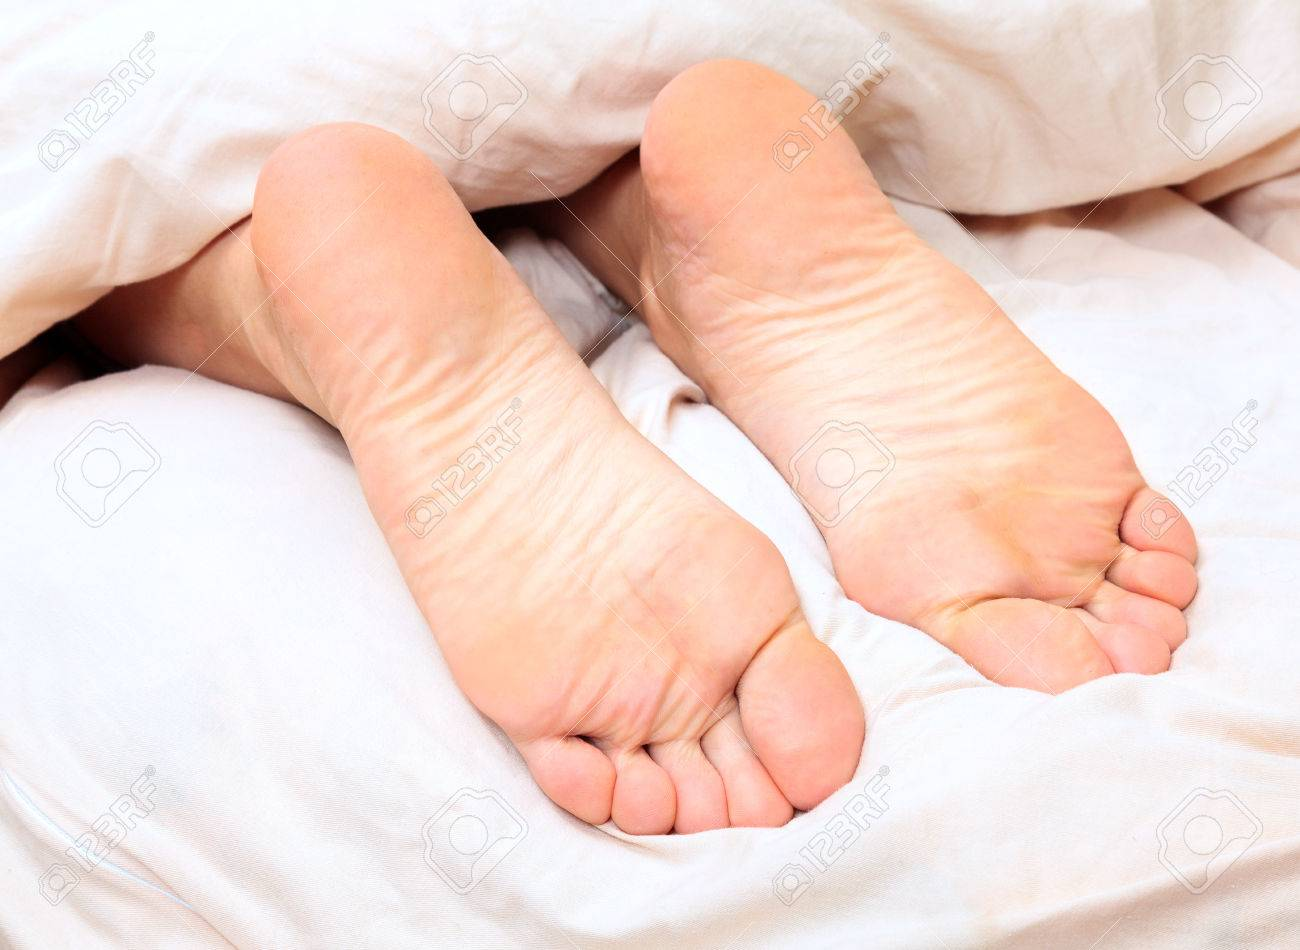 female bare feet under the blanket stock photo, picture and royalty